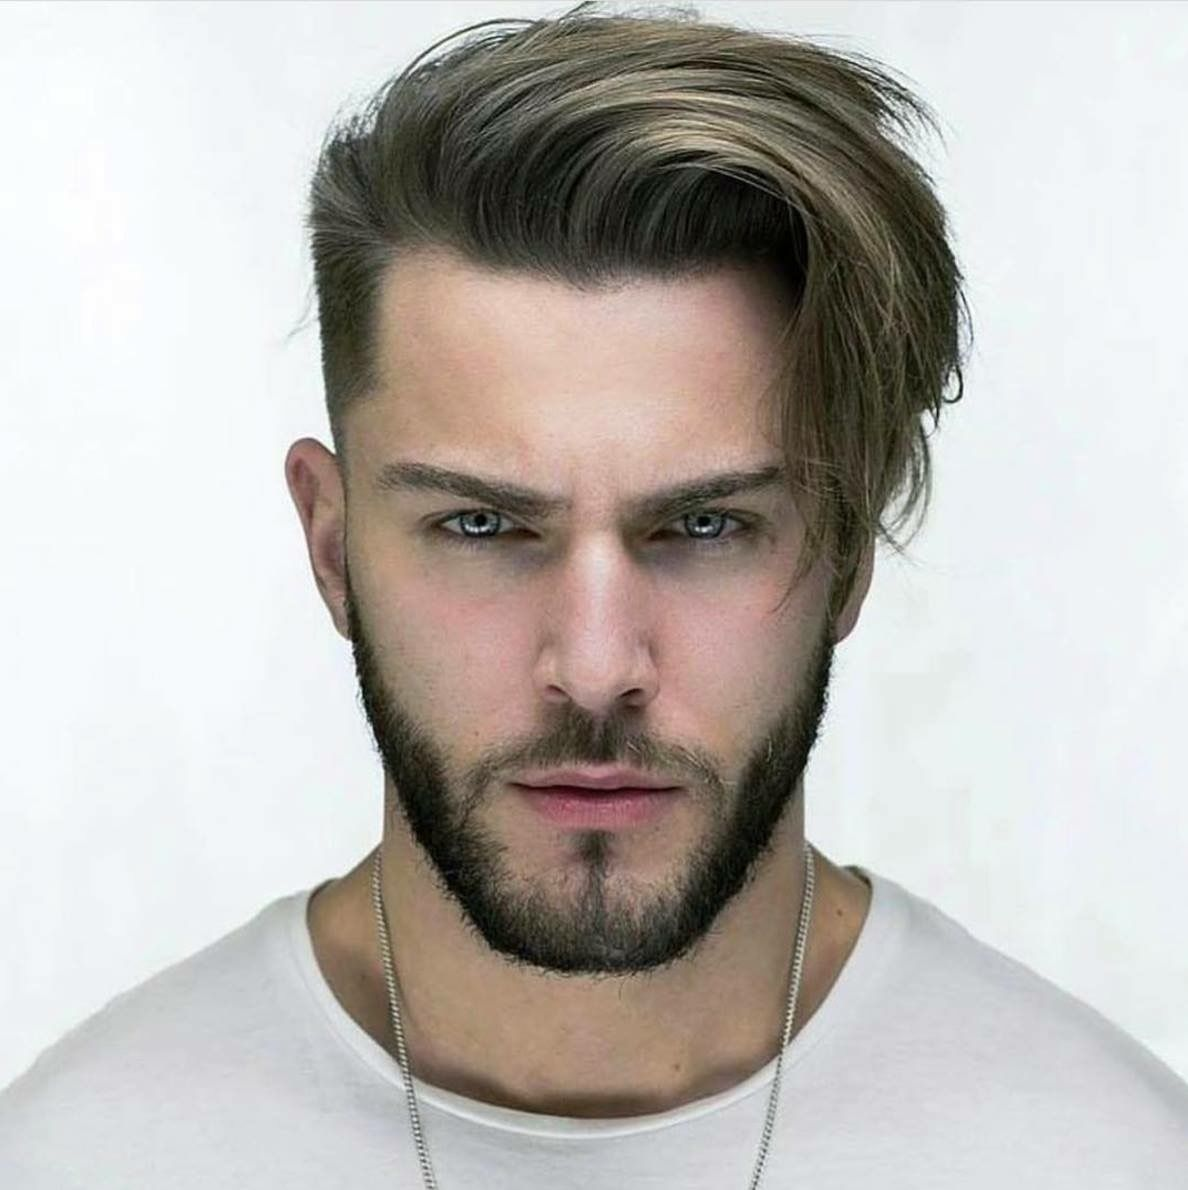 Pin By Mrdoctor On Barba Cabelo E Bigode Cool Hairstyles For Men Cool Hairstyles Men Haircut 2018